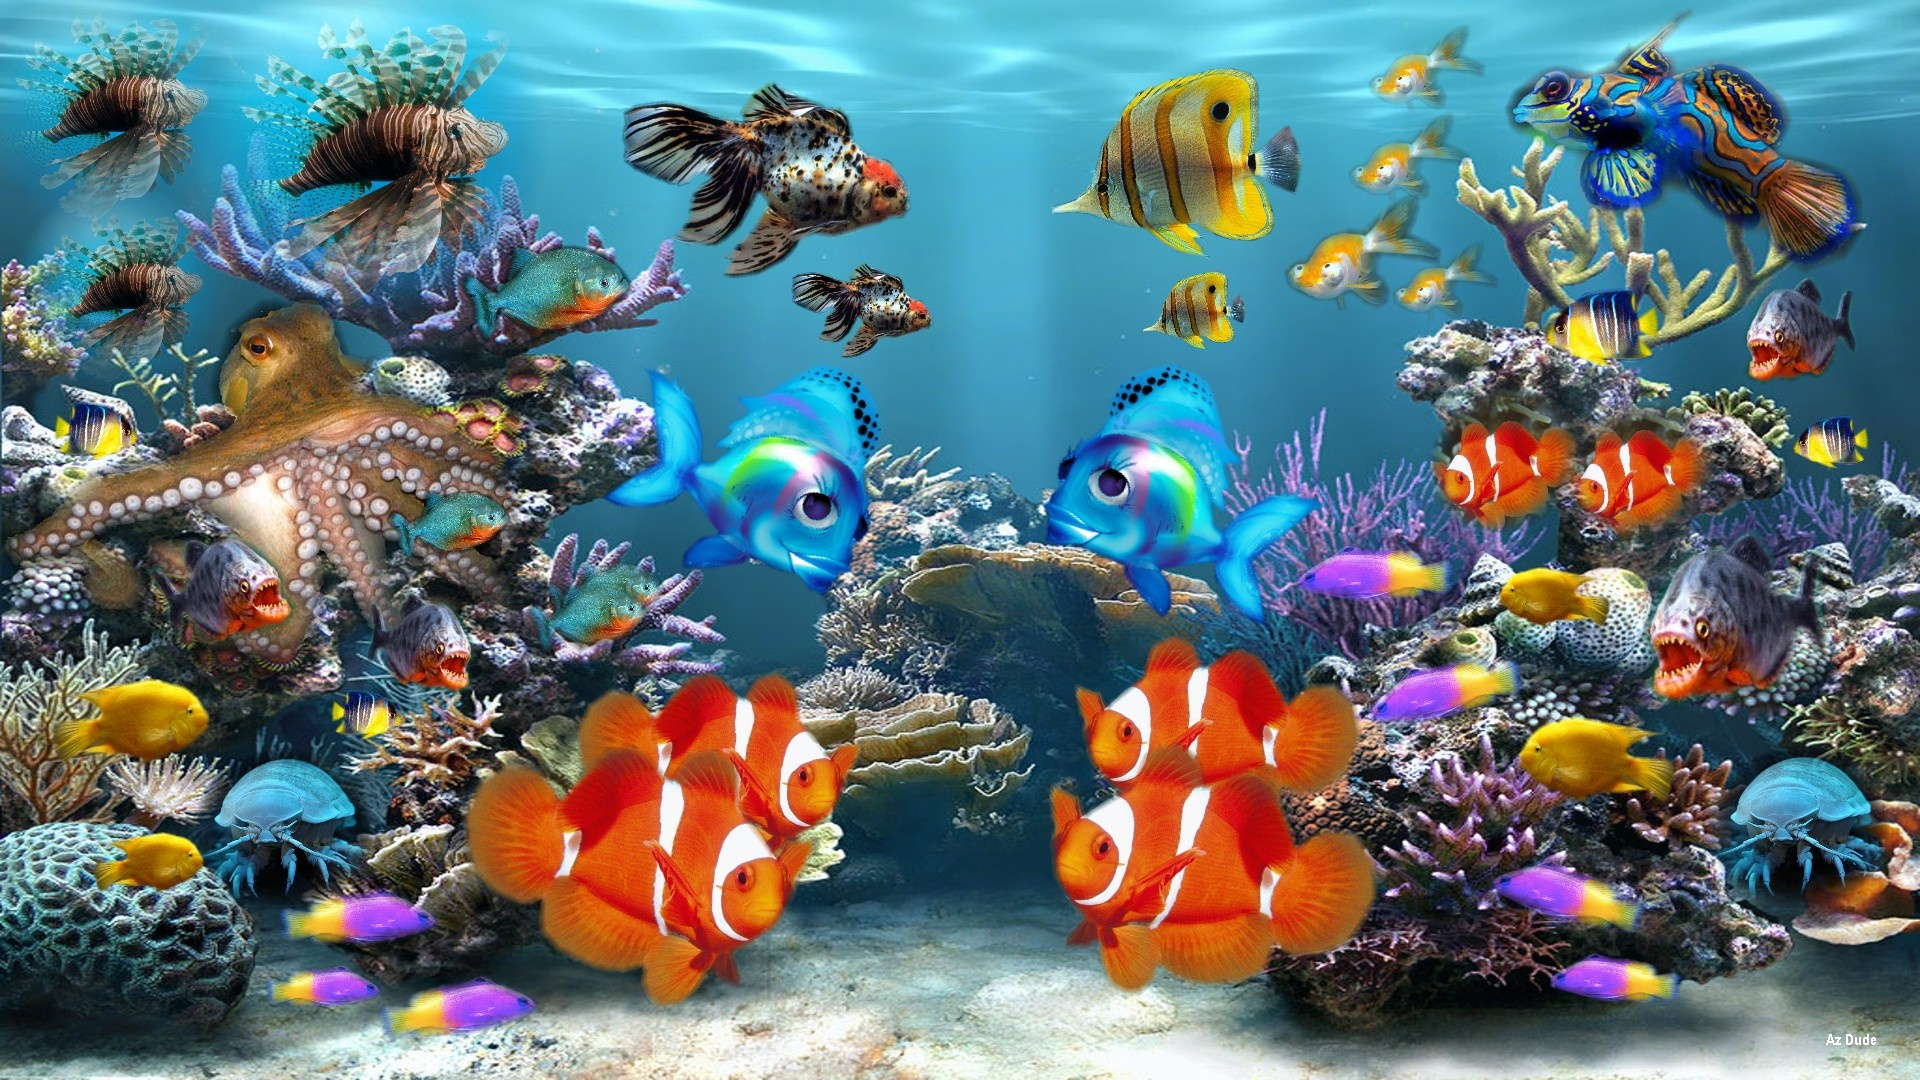 Fish aquarium live wallpaper - Fonds D Cran Aquarium Pc Et Tablettes Ipad Etc